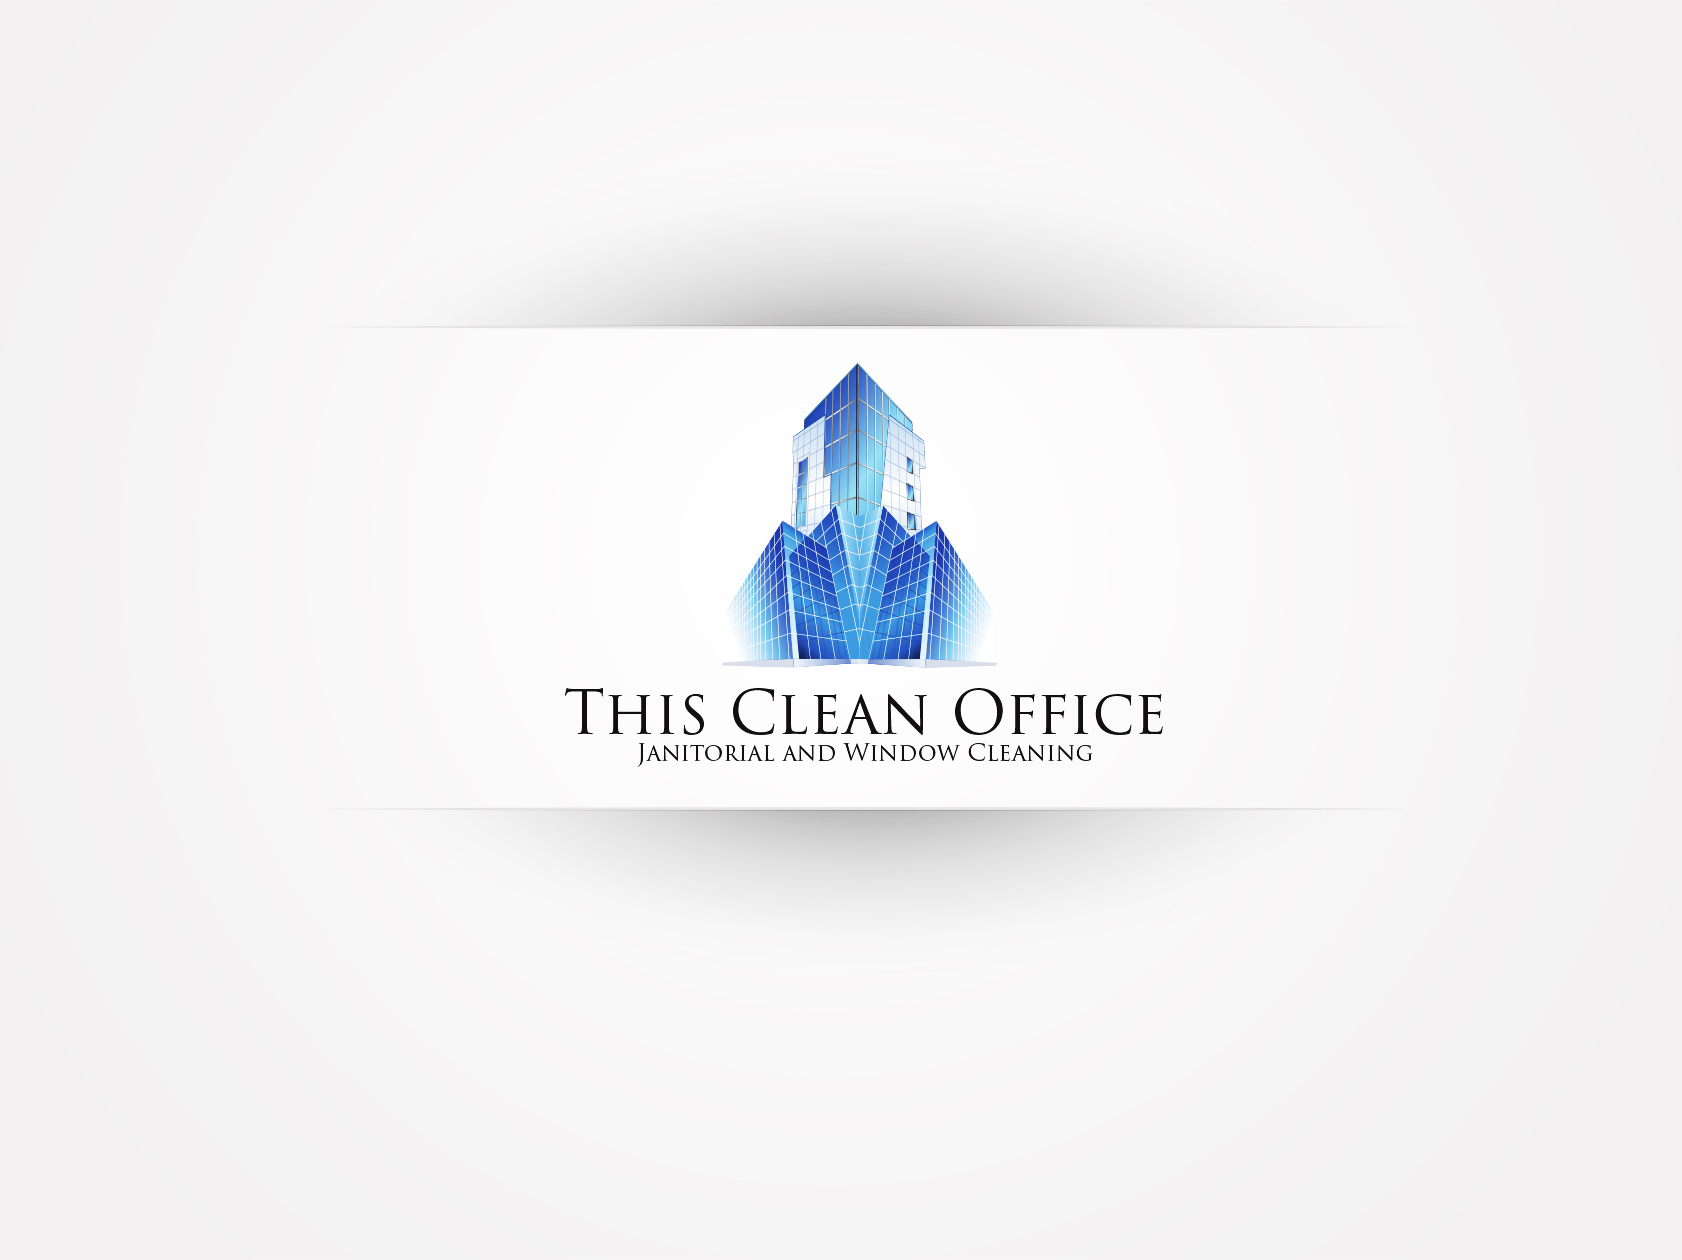 Logo Design by OmegaDesigns - Entry No. 30 in the Logo Design Contest Professional and Unforgettable Logo Design for This Clean Office.